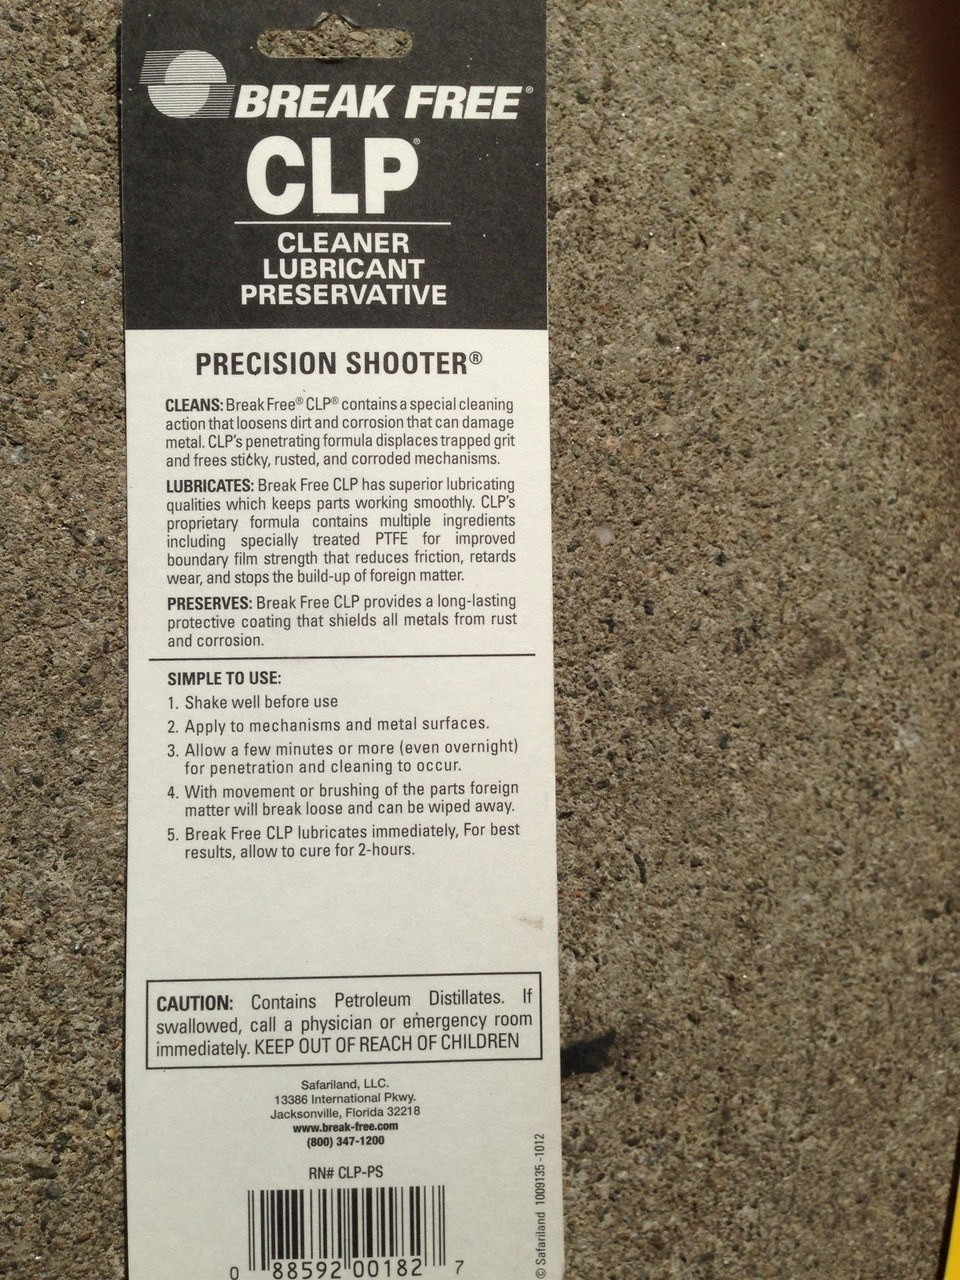 Break Free CLP Precision Shooter